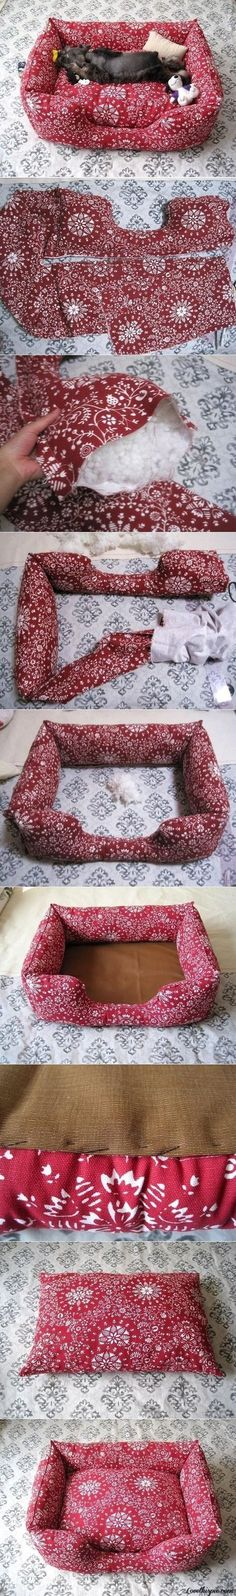 I think I could make something like this for Toby's cage. Needs to be a lot bigger though.